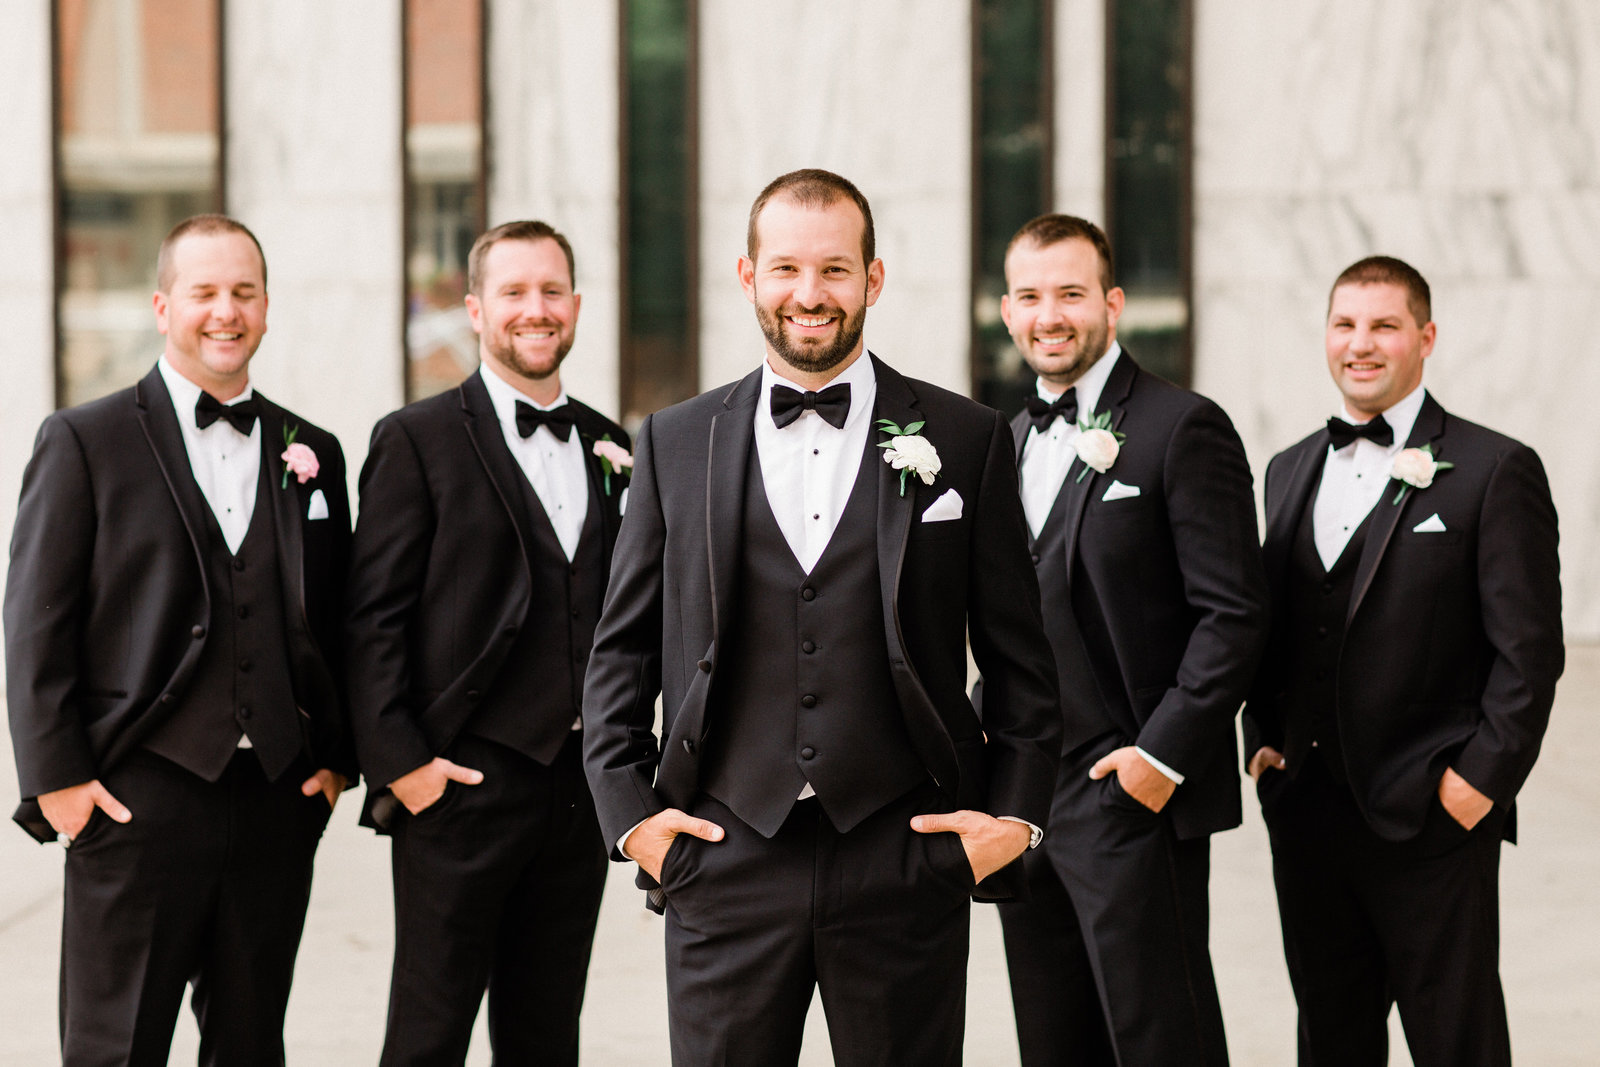 Groom and groomsmen OSU